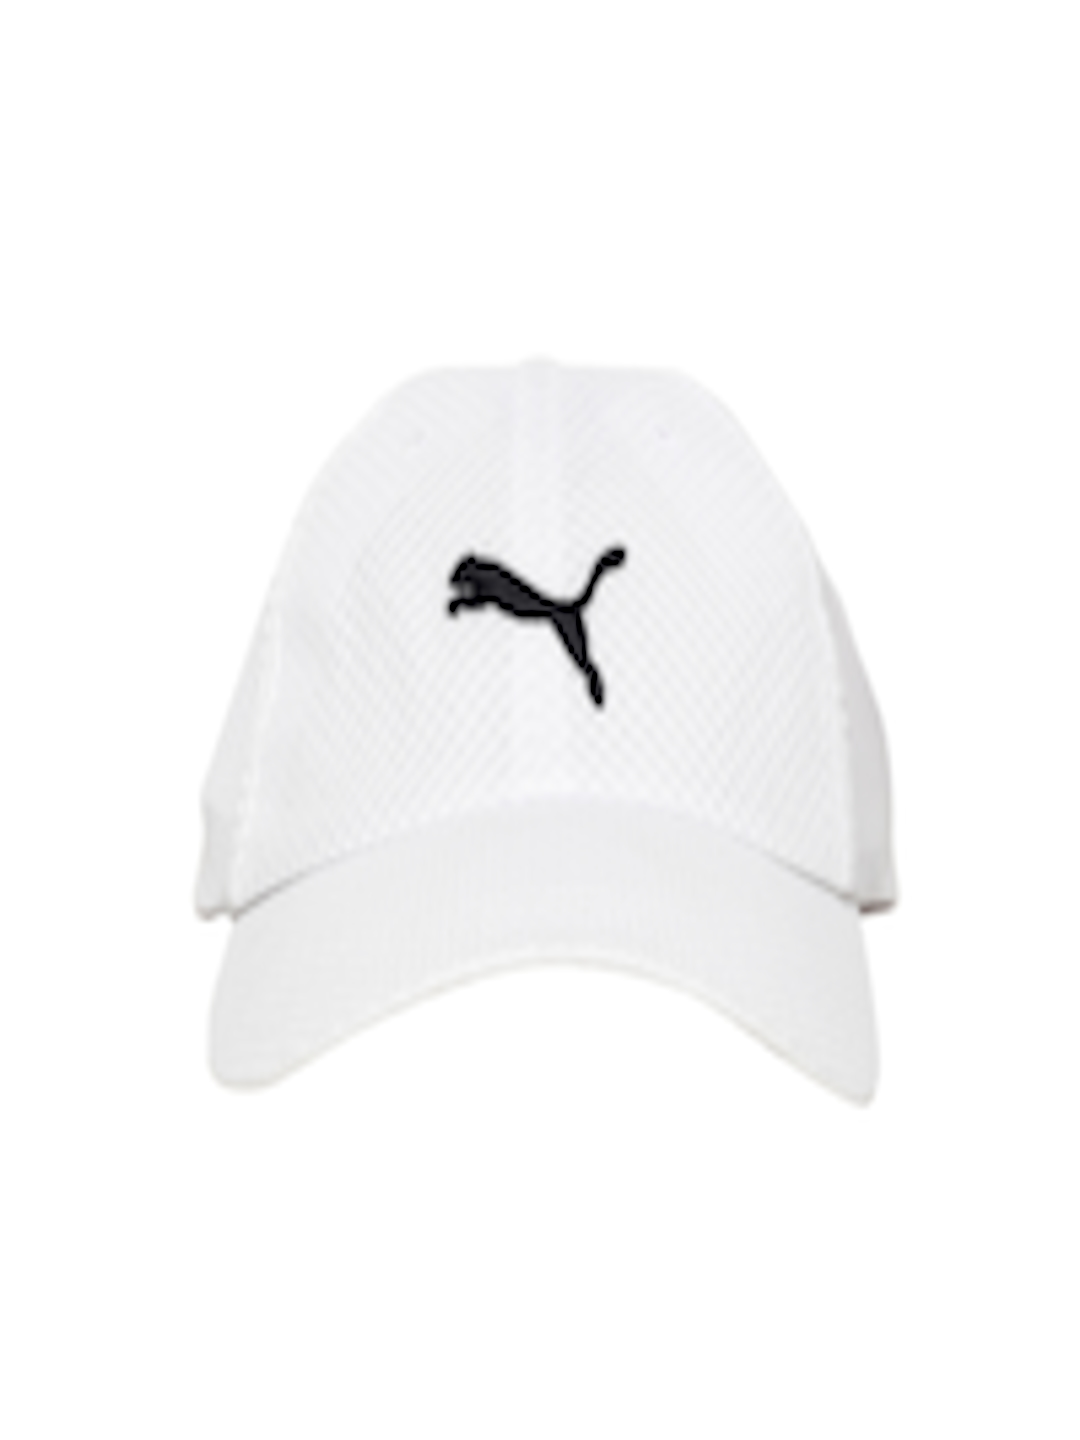 excellent quality special for shoe best sell Buy Puma Unisex White Solid Training Mesh Baseball Cap - Caps for ...